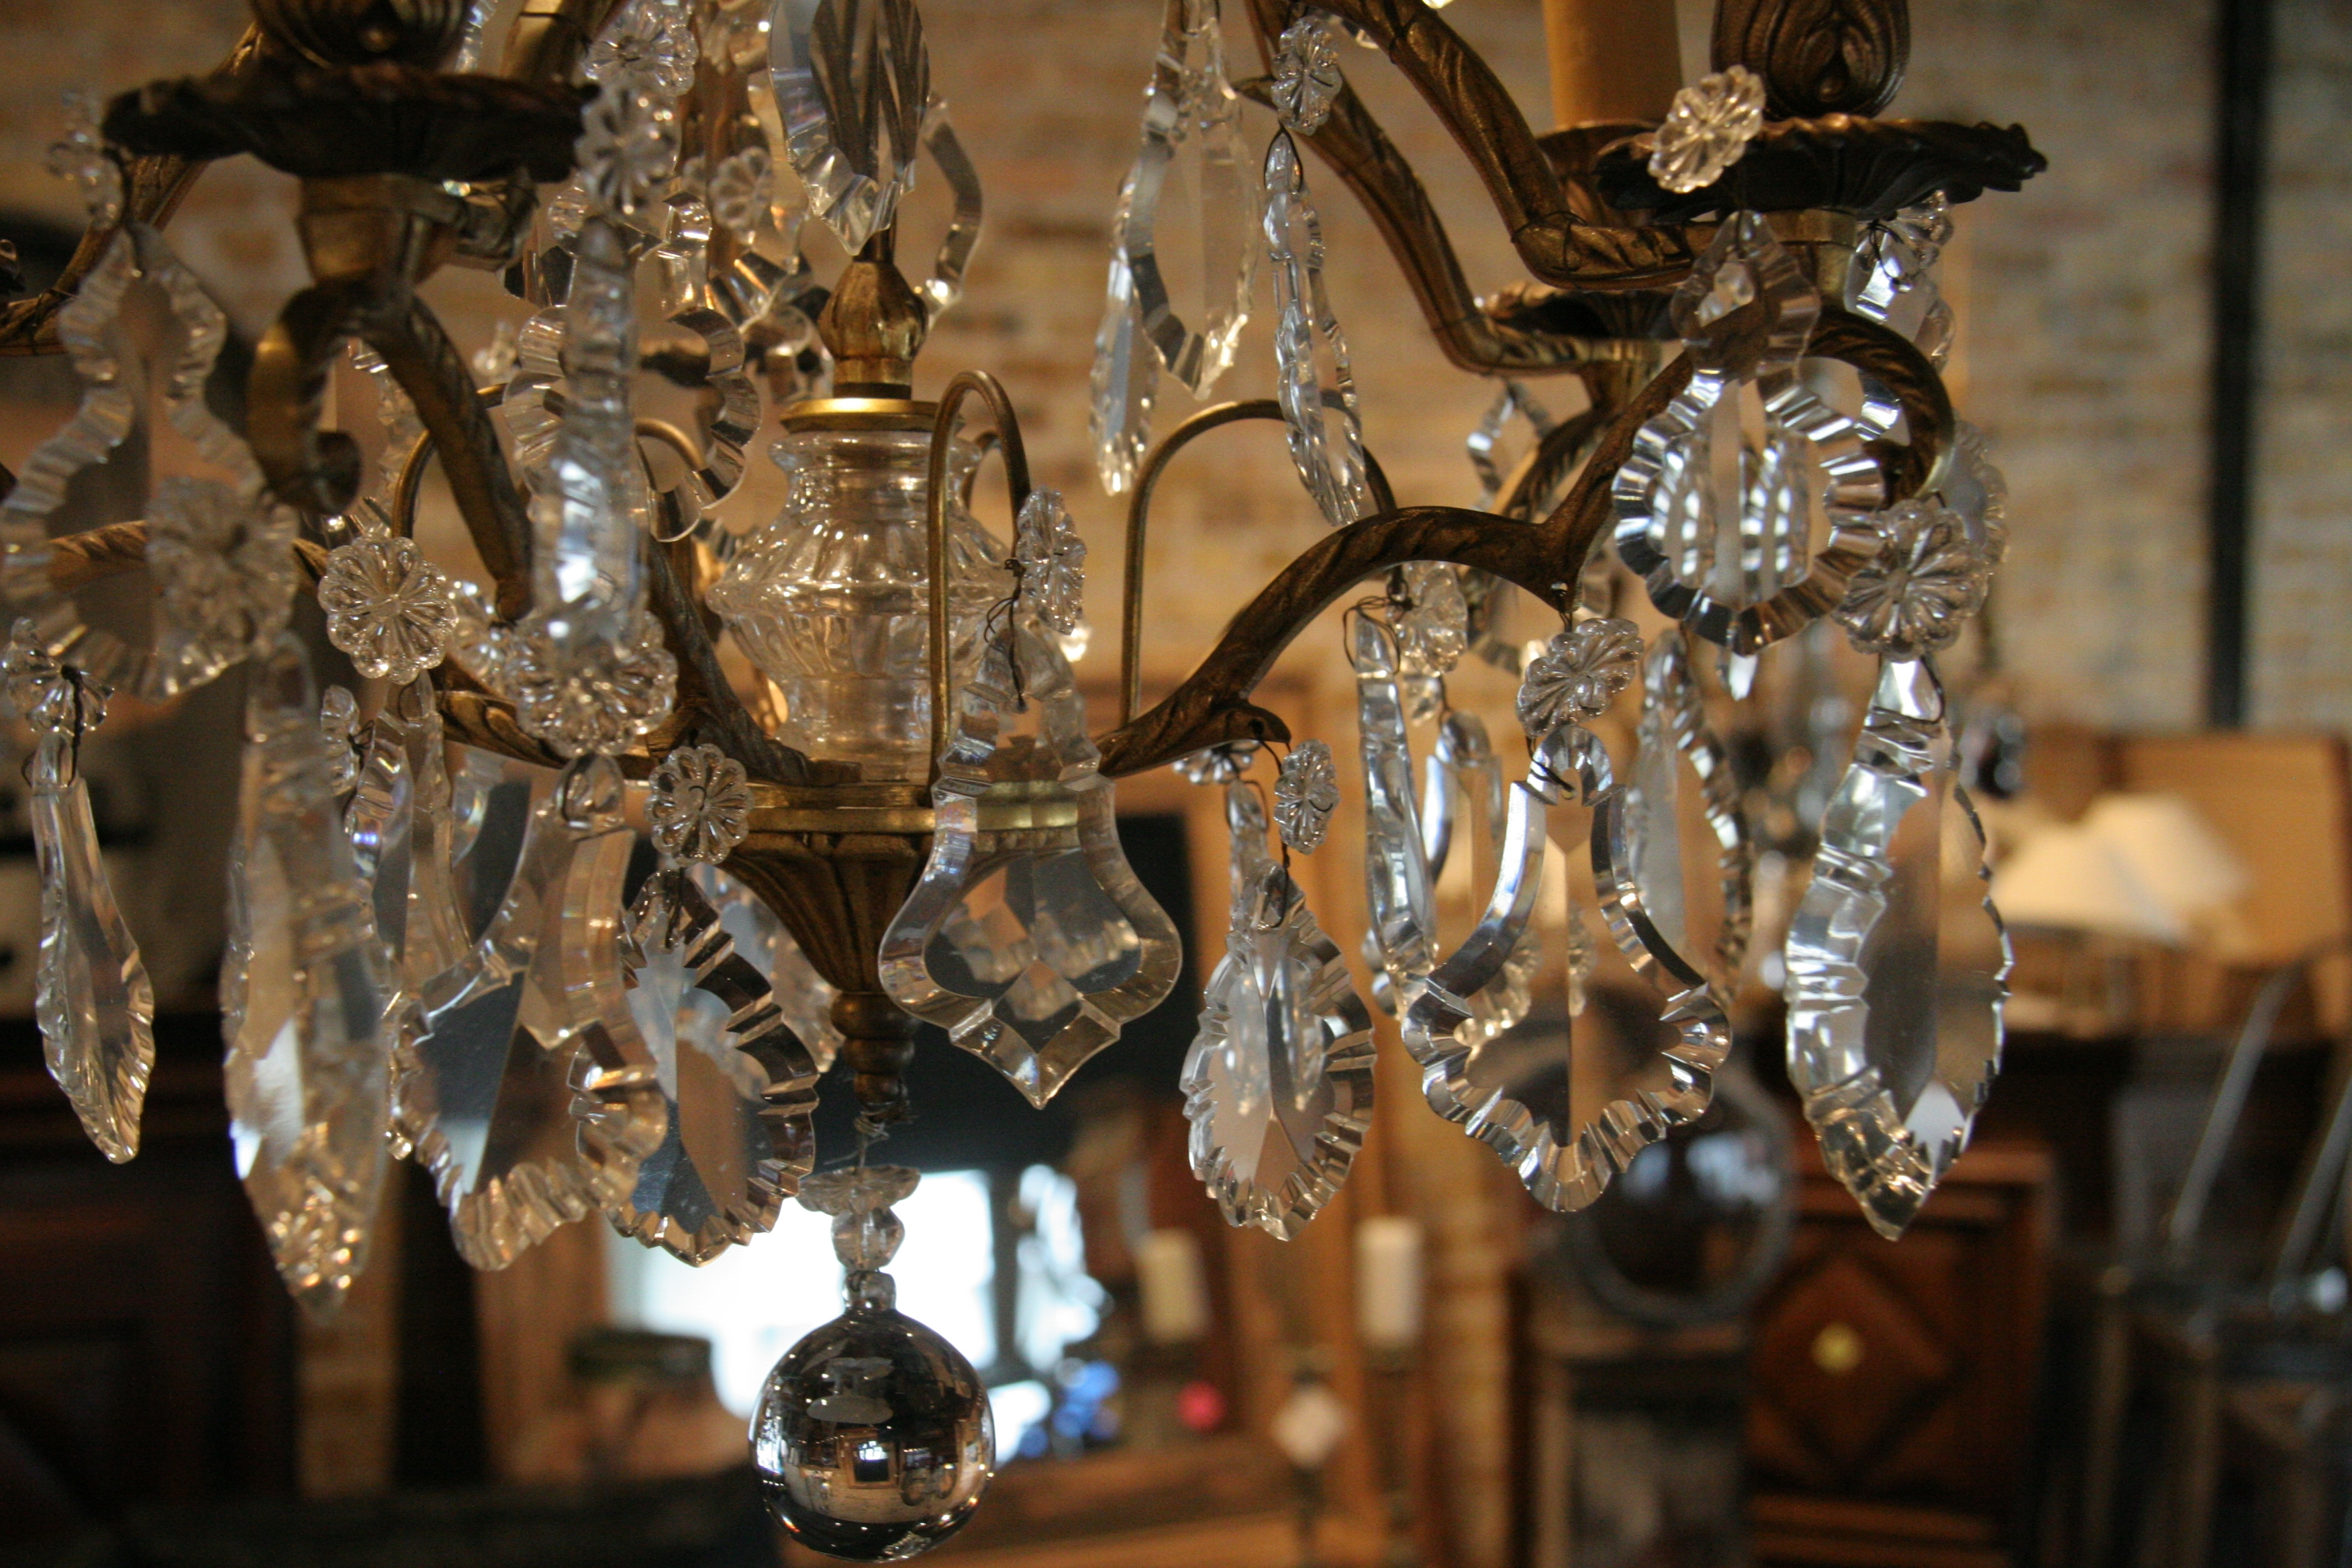 Antique French 5 Light Brass And Crystal Chandelier Regarding Vintage French Chandeliers (Image 5 of 15)